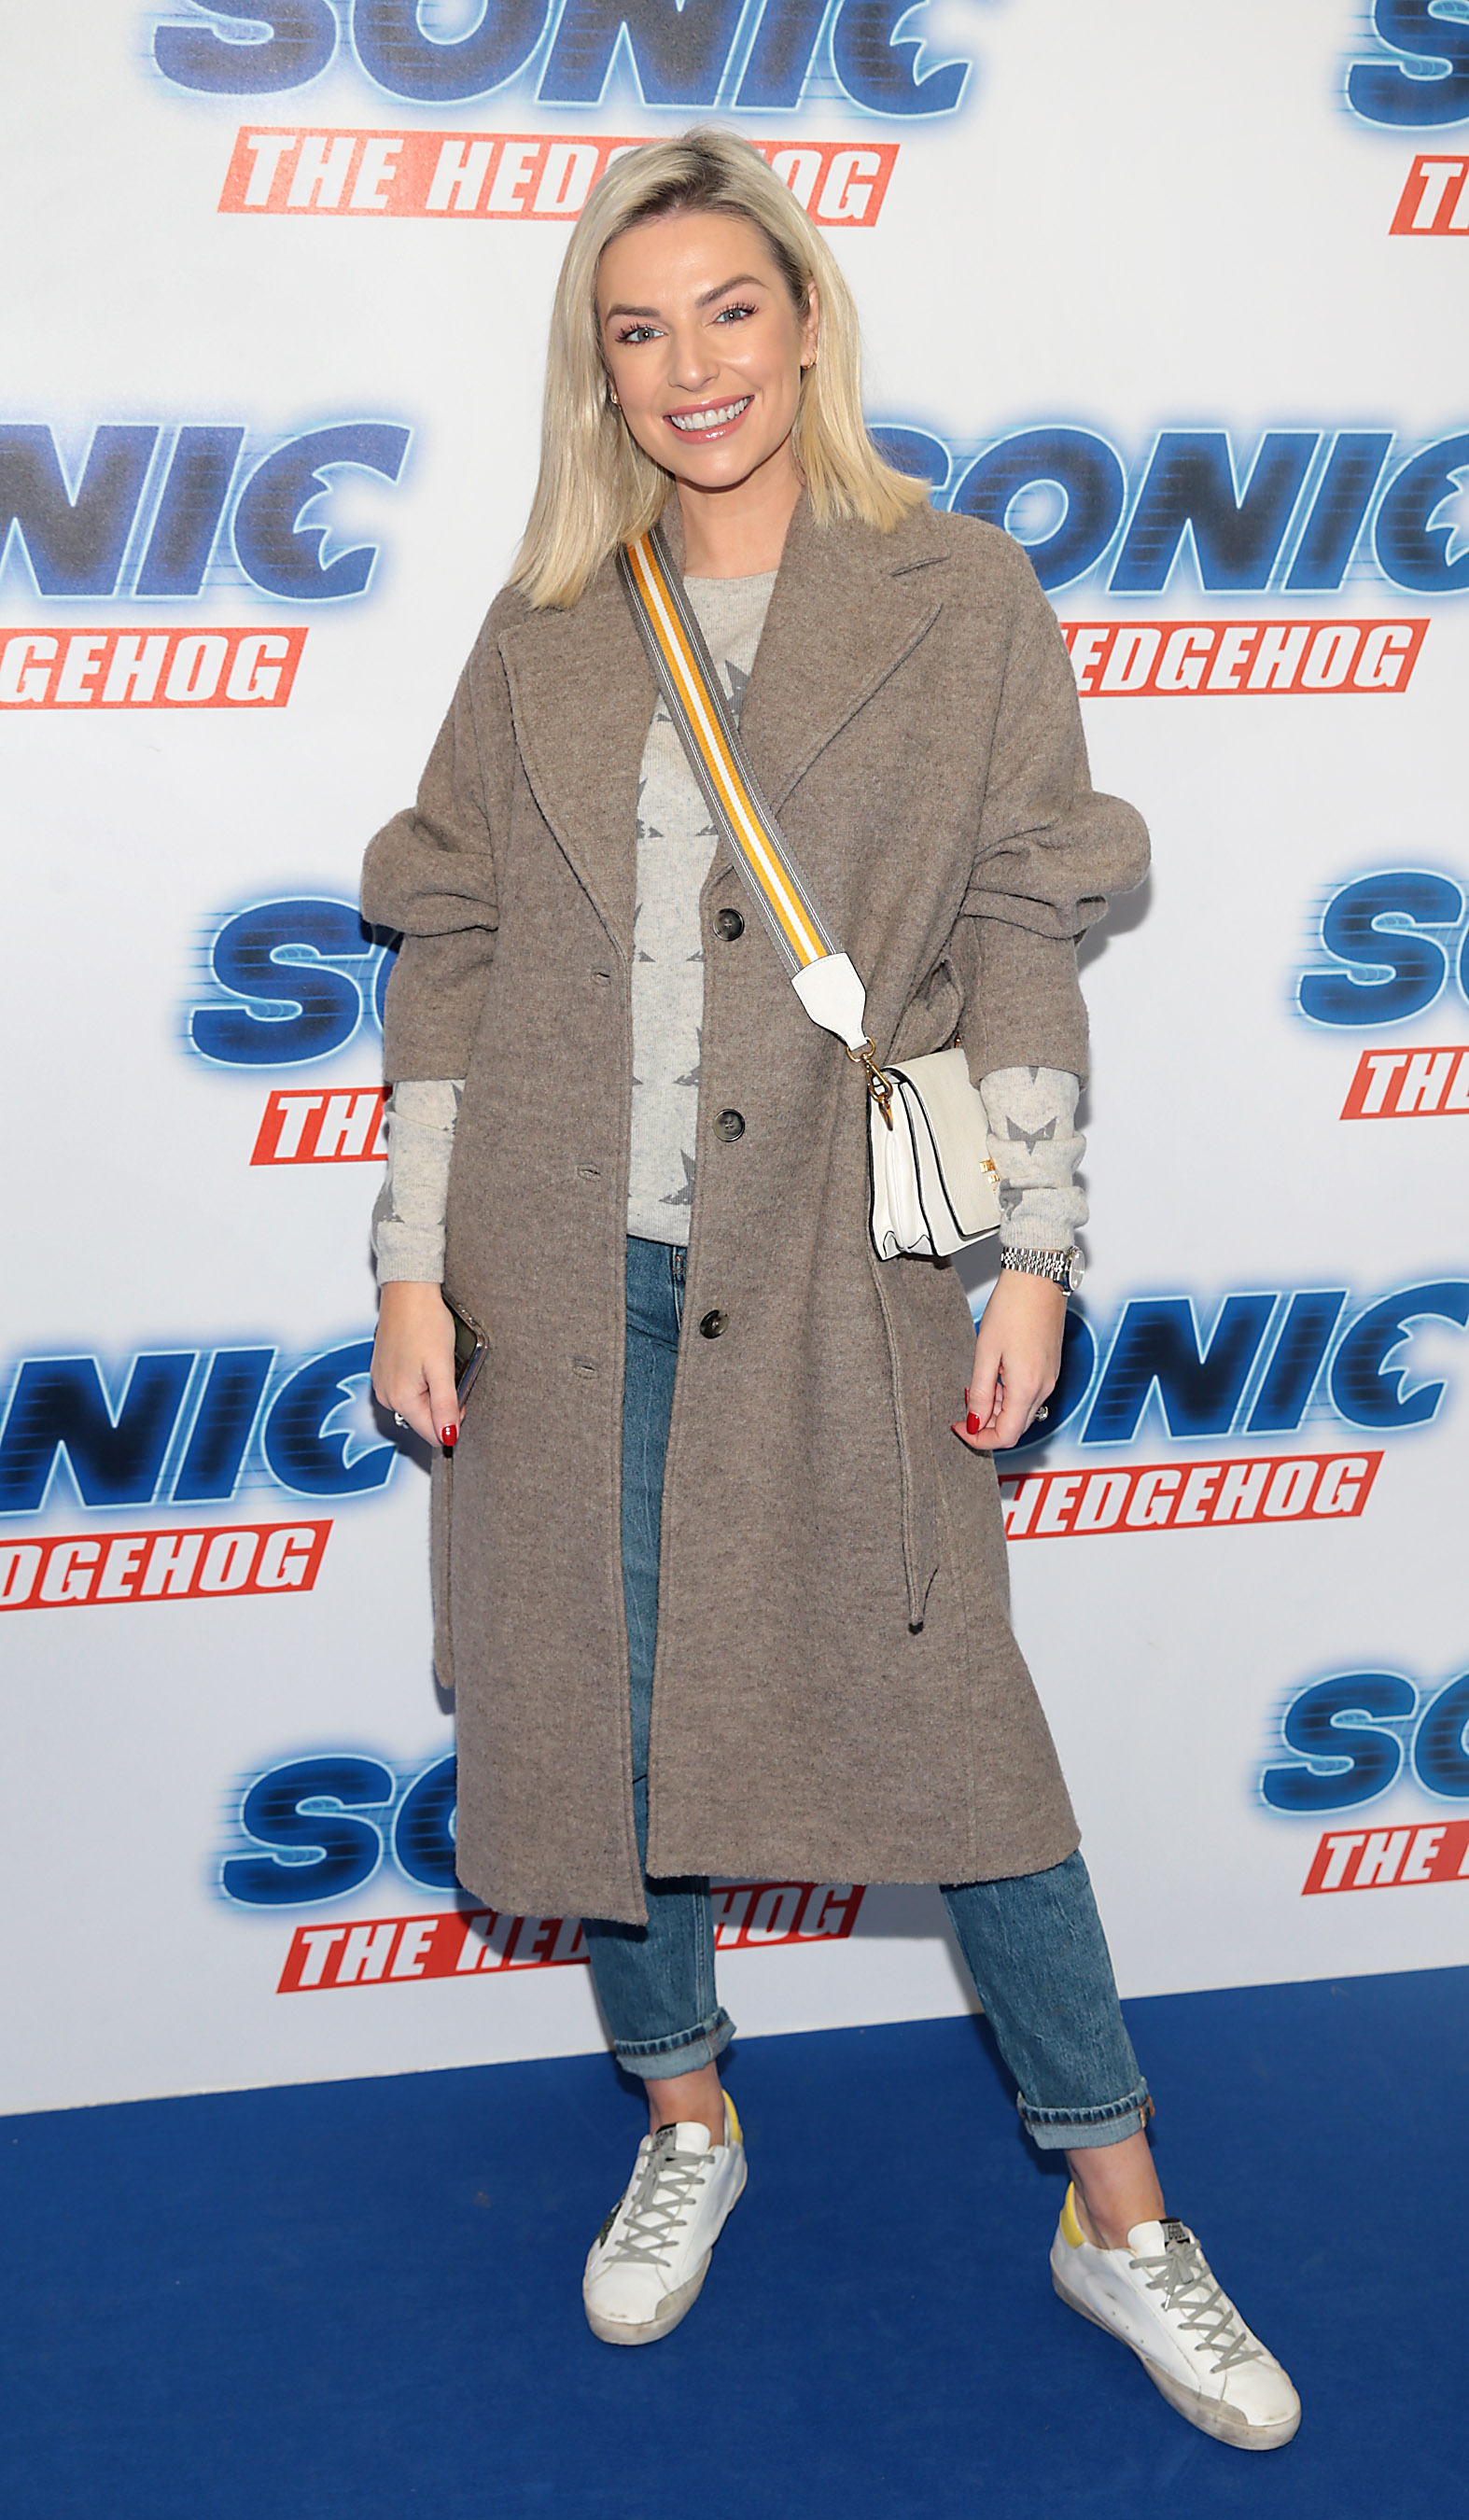 Pippa O Connor at the special preview screening of Sonic the Hedgehog Movie at the Odeon Cinema in Point Square, Dublin. Pic: Brian McEvoy